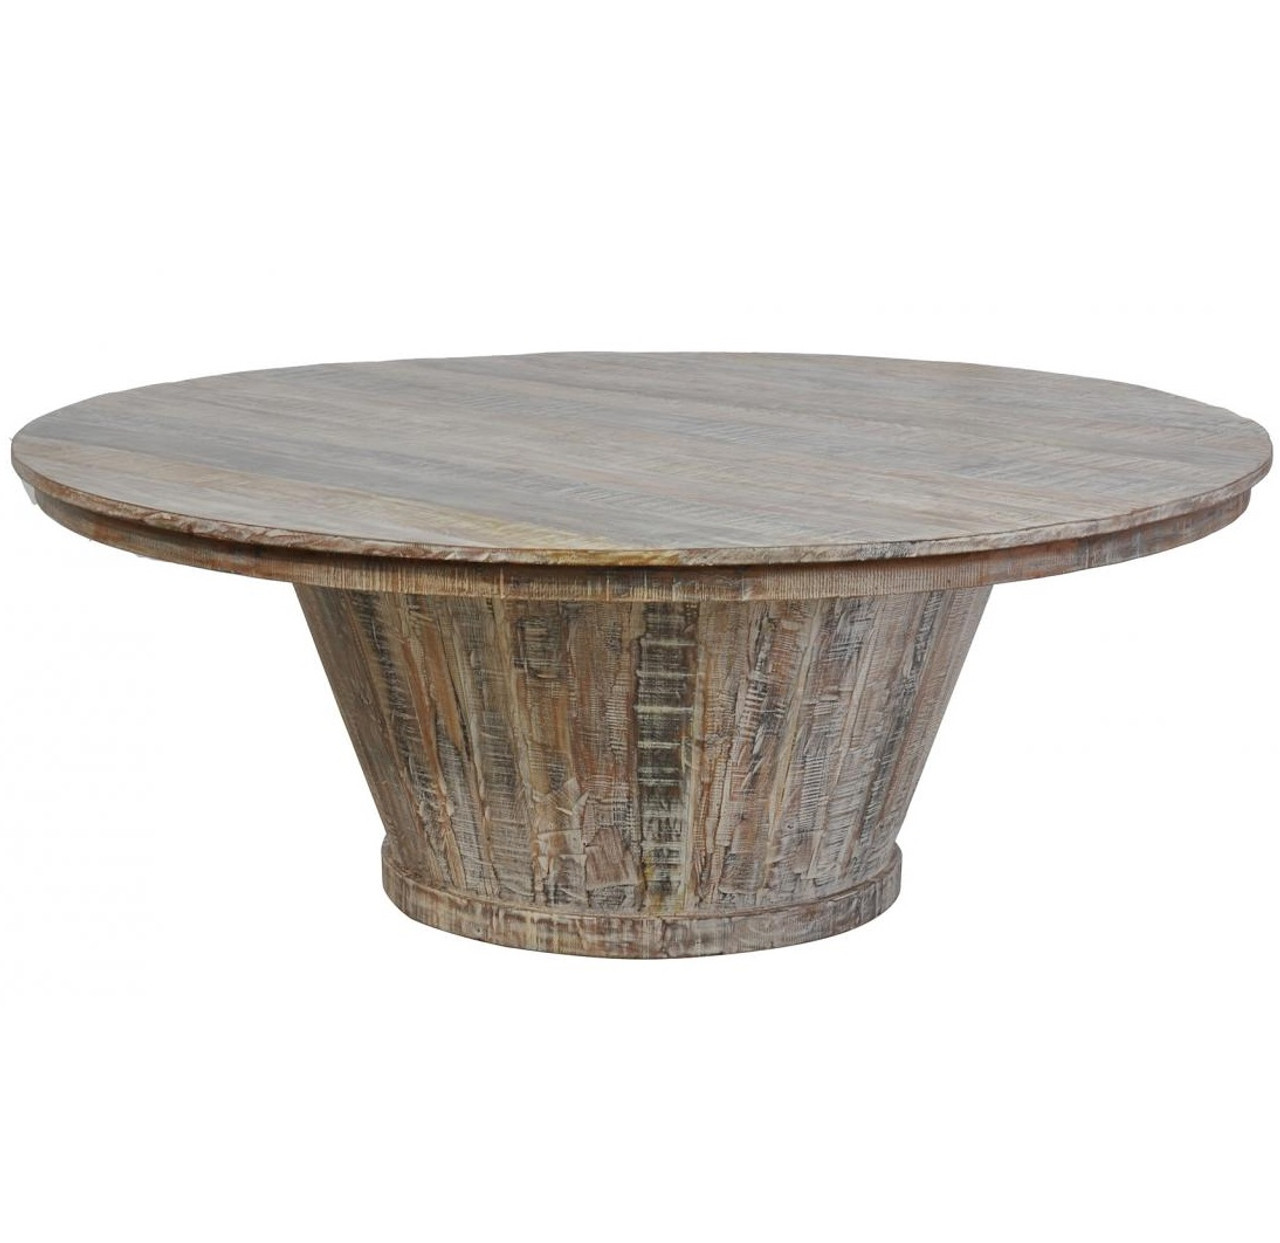 Hampton Reclaimed Wood Round Dining Table 80""